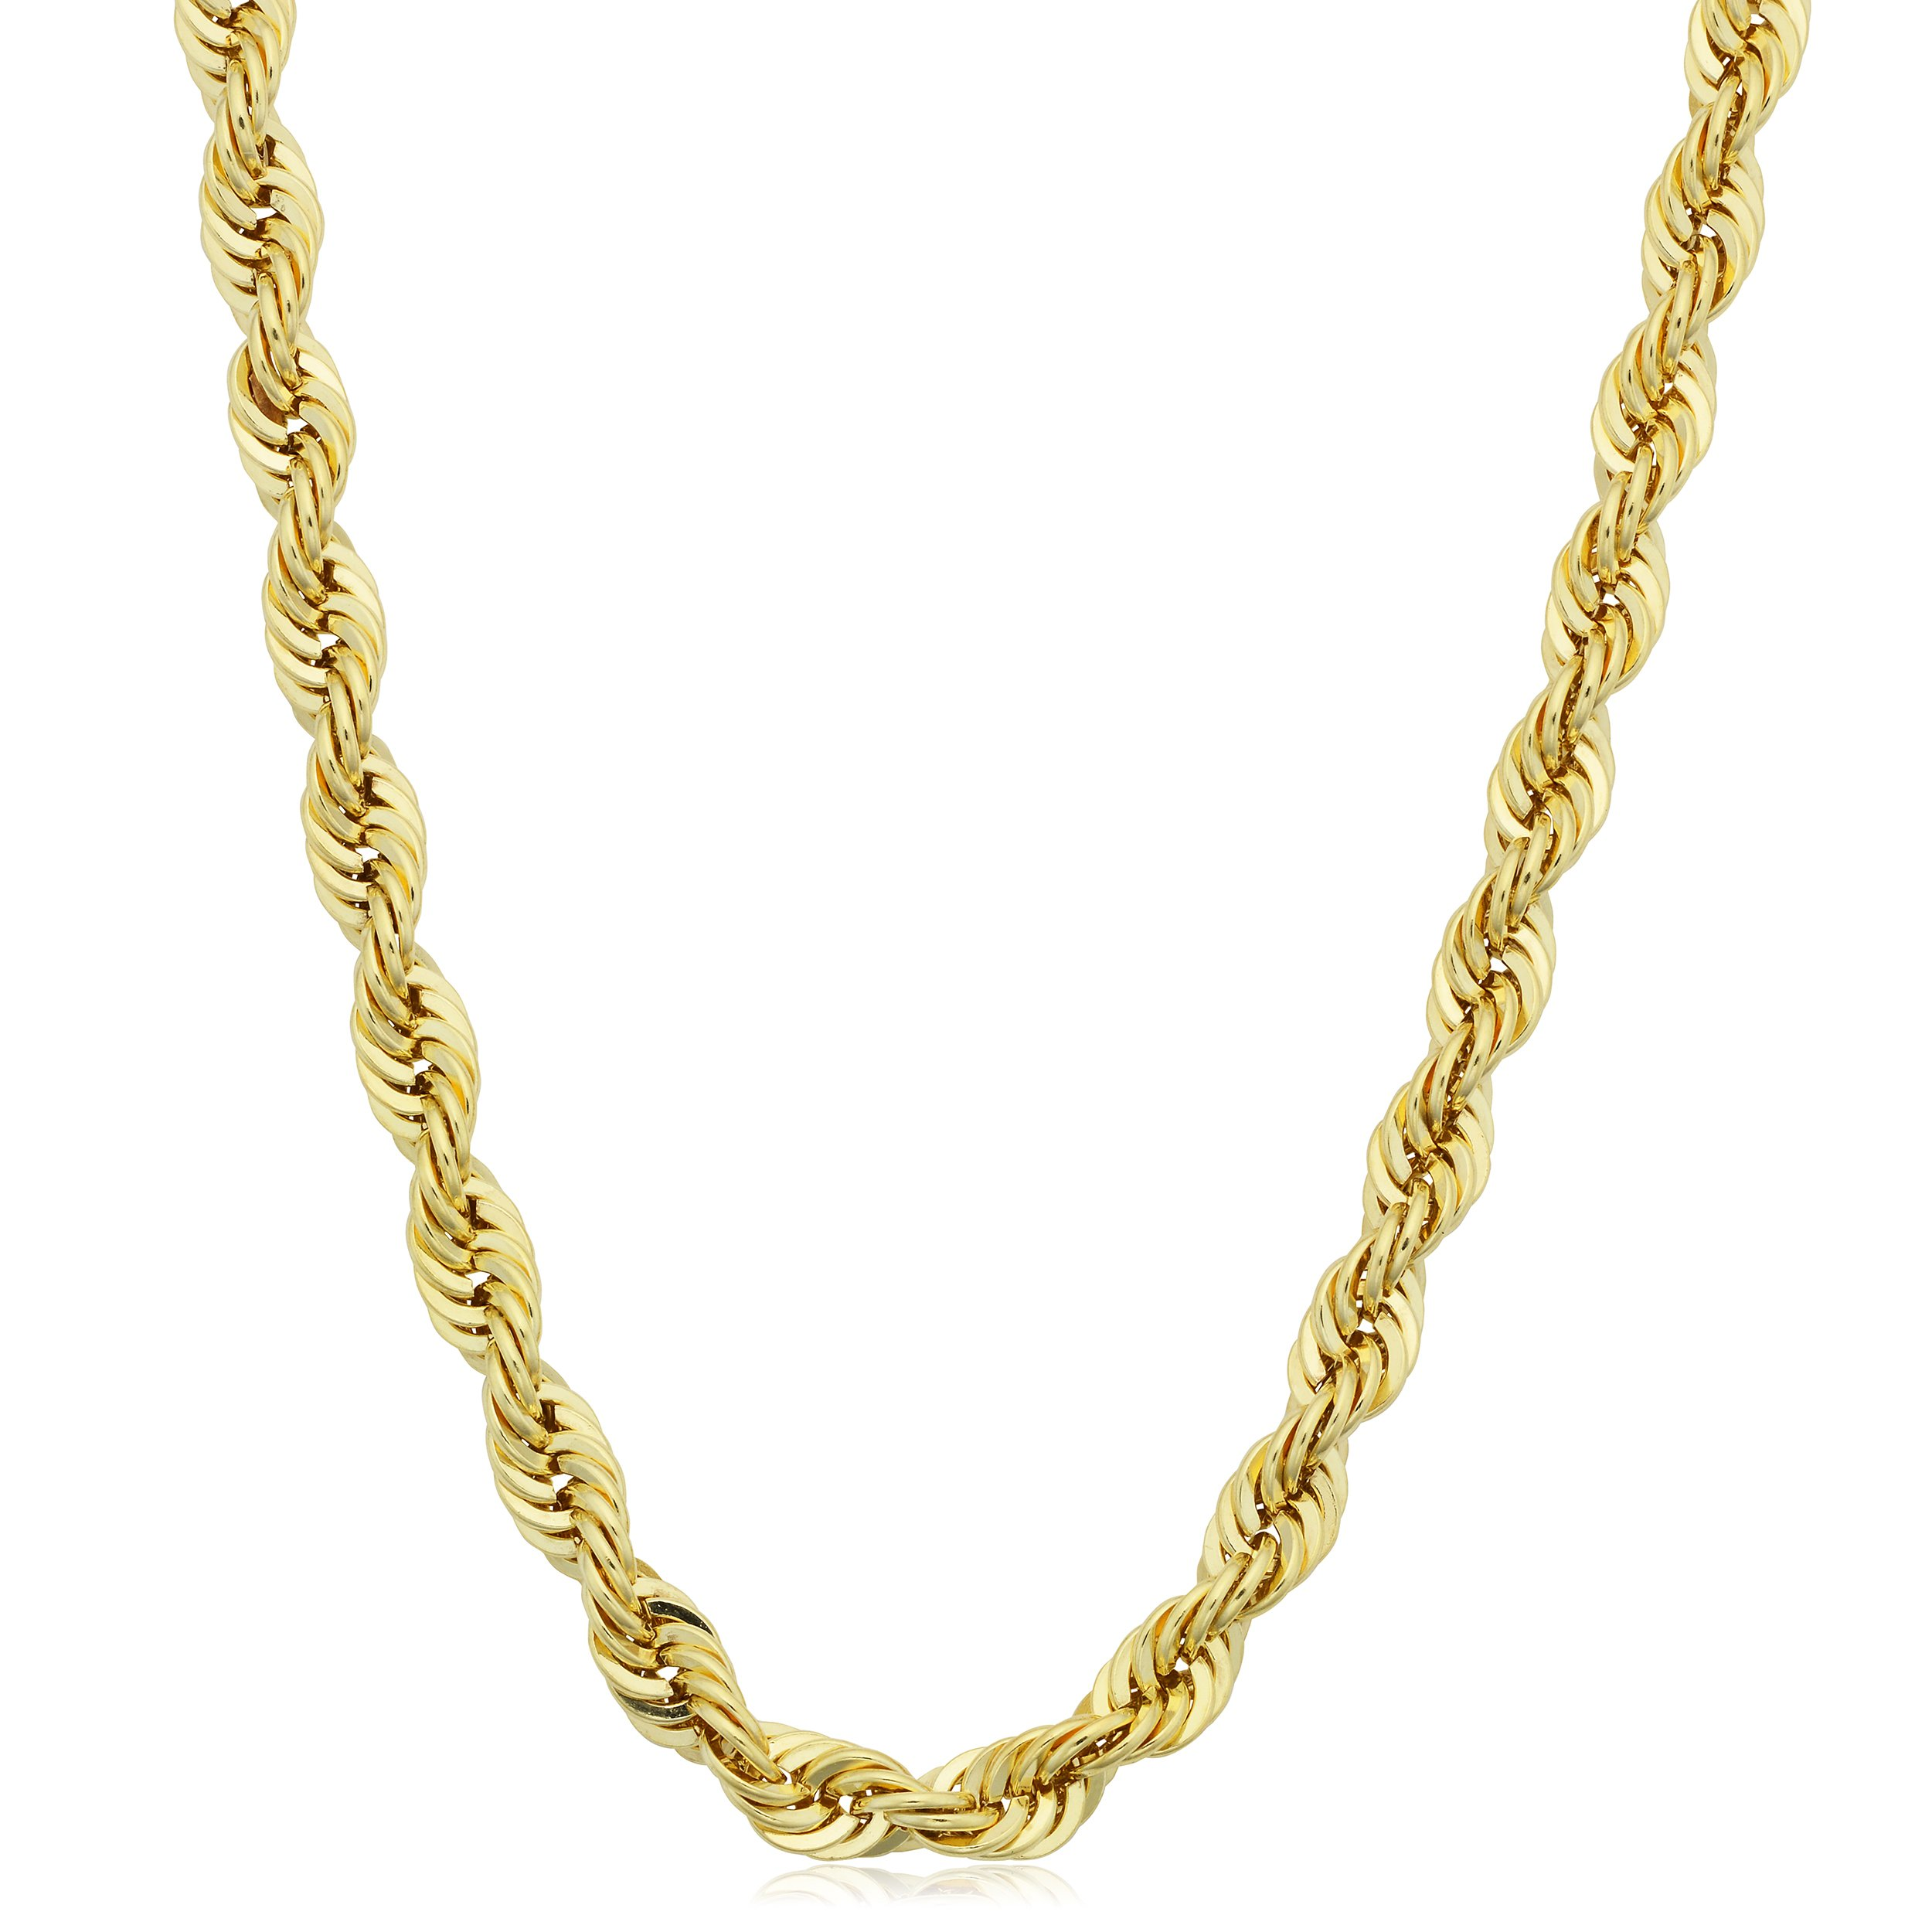 Kooljewelry 14k Yellow Gold Filled Men's 4.2mm Rope Chain Necklace (30 inch)